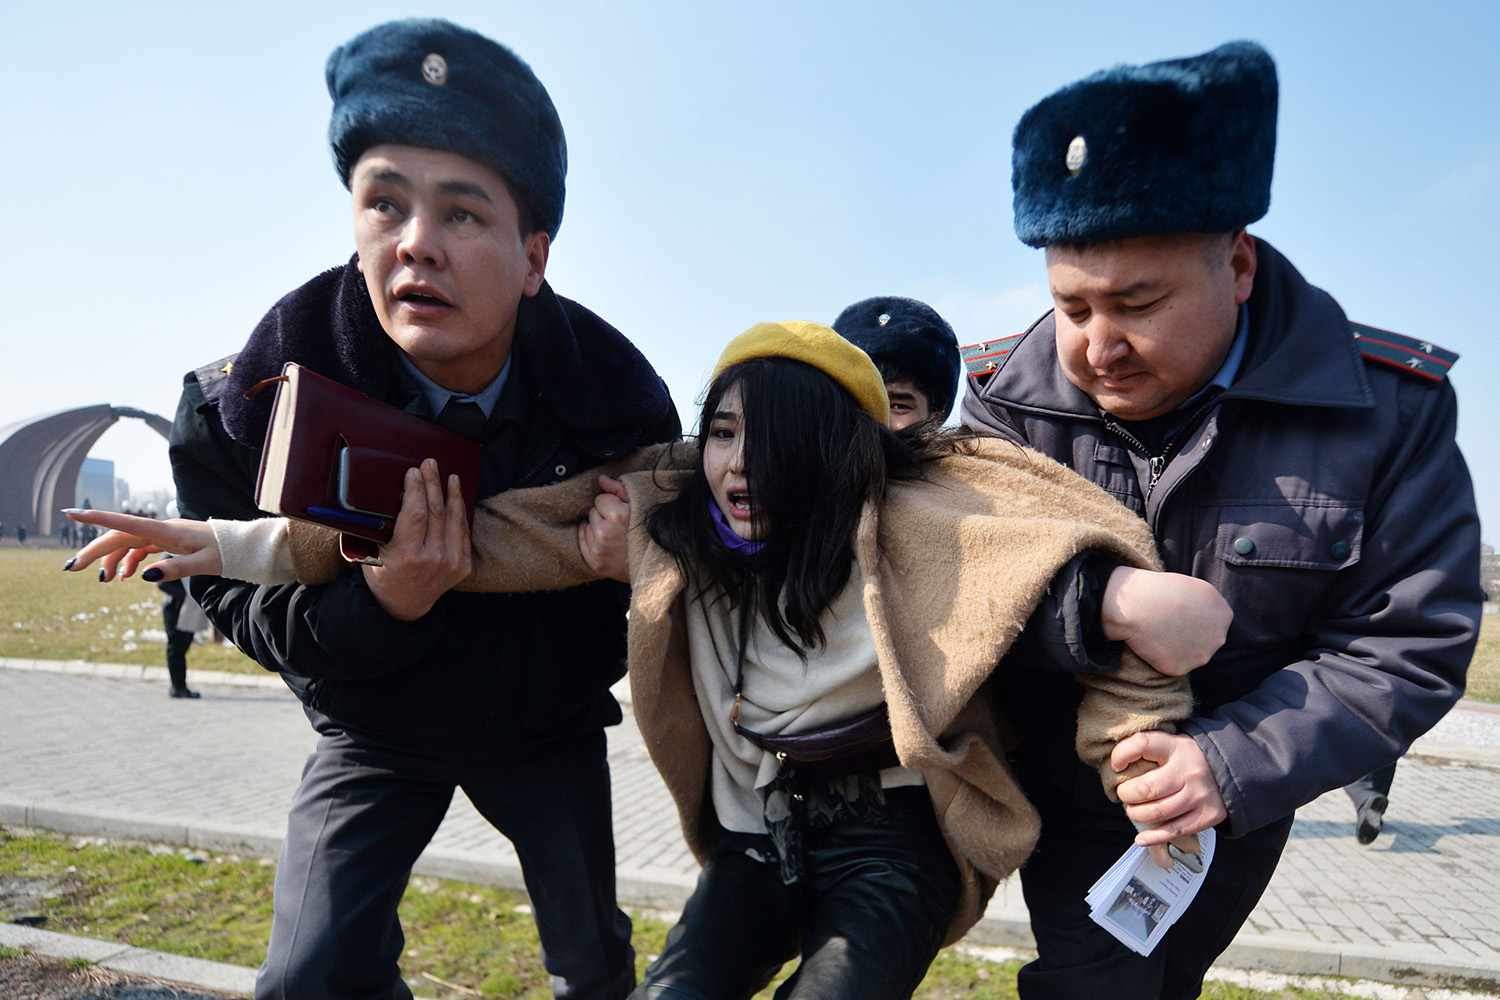 Police arrest a woman protesting on International Women's Day against gender-based violence in Bishkek, Kyrgyzstan, on March 8. VYACHESLAV OSELEDKO/AFP via Getty Images